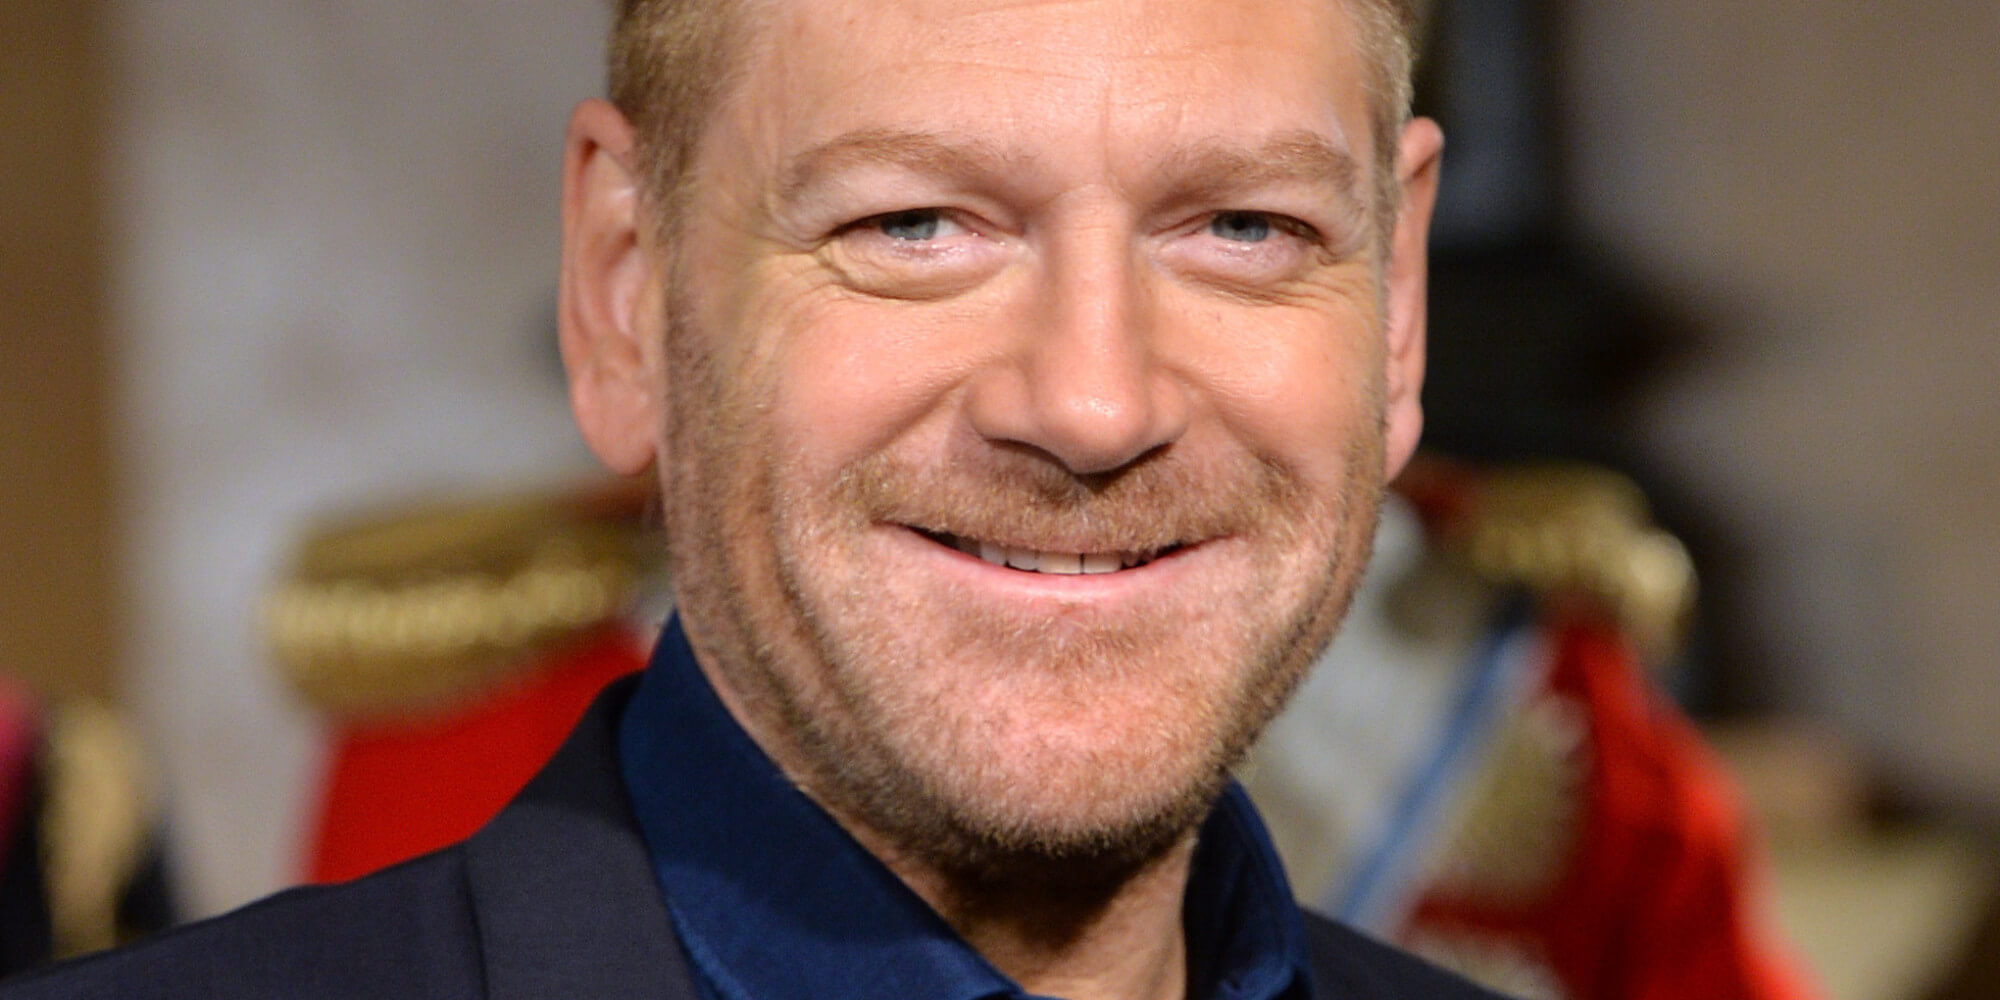 LONDON, ENGLAND - MARCH 20:  Kenneth Branagh attends the Cinderella Exhibition Photocall at Leicester Square on March 20, 2015 in London, England.  (Photo by Anthony Harvey/WireImage)